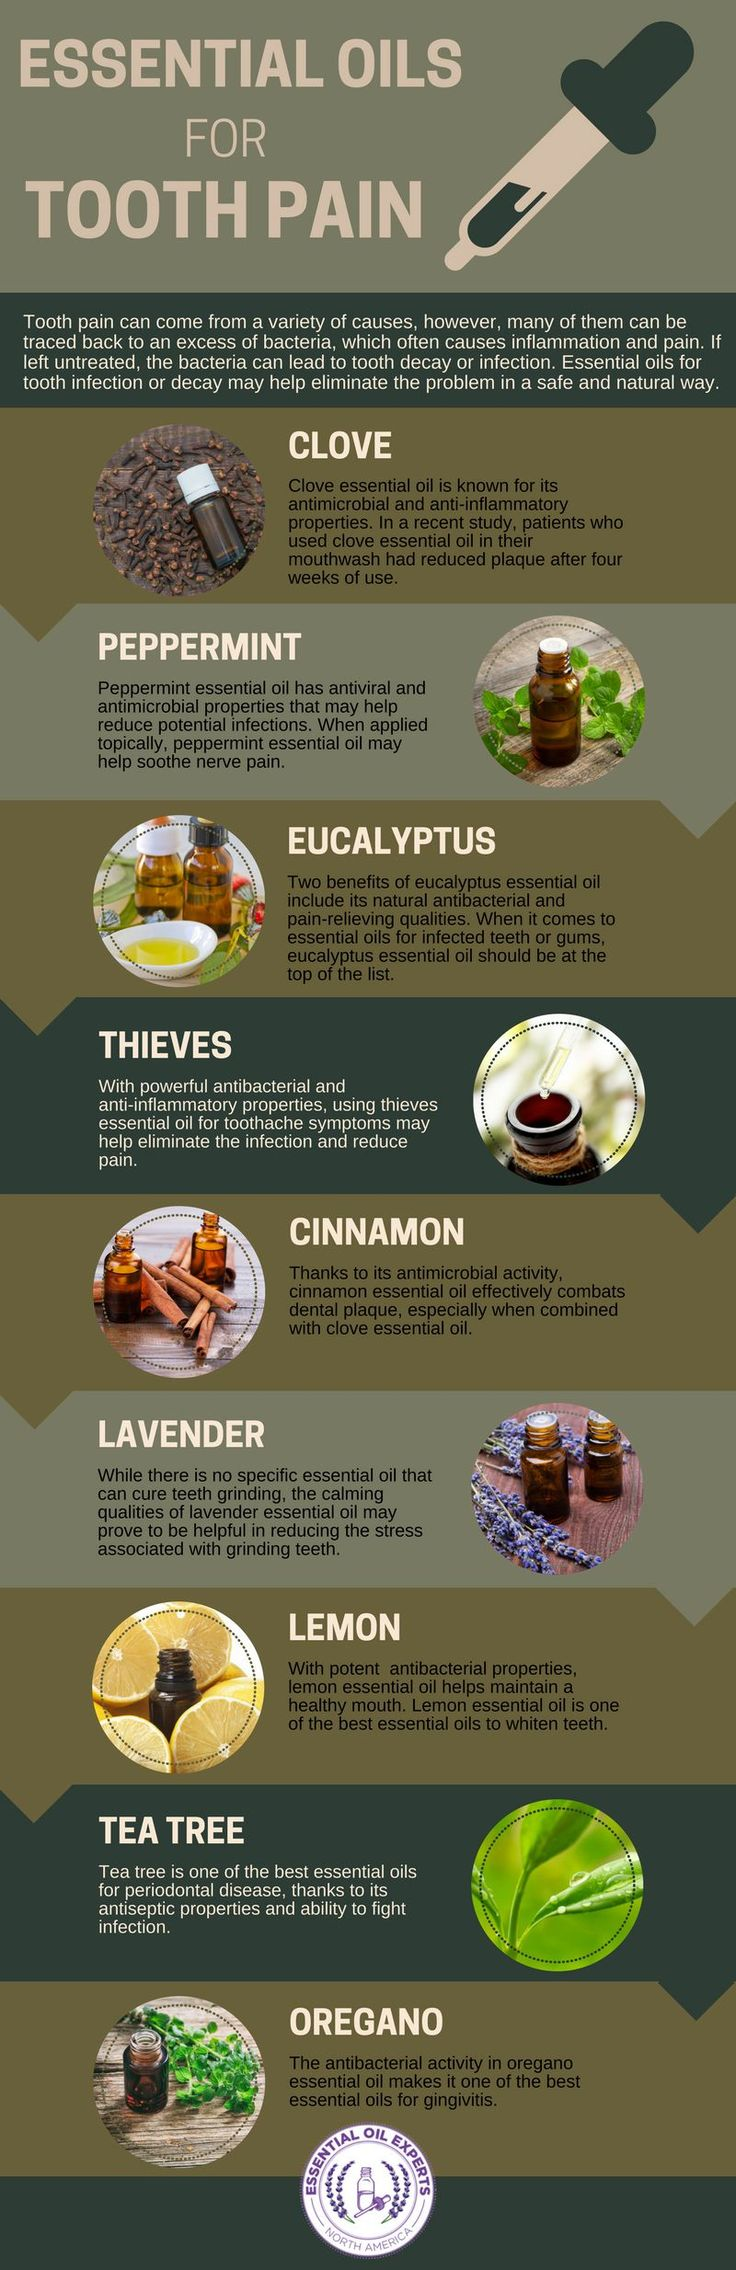 Best 25+ Tooth pain relief ideas on Pinterest | Cavity pain ...